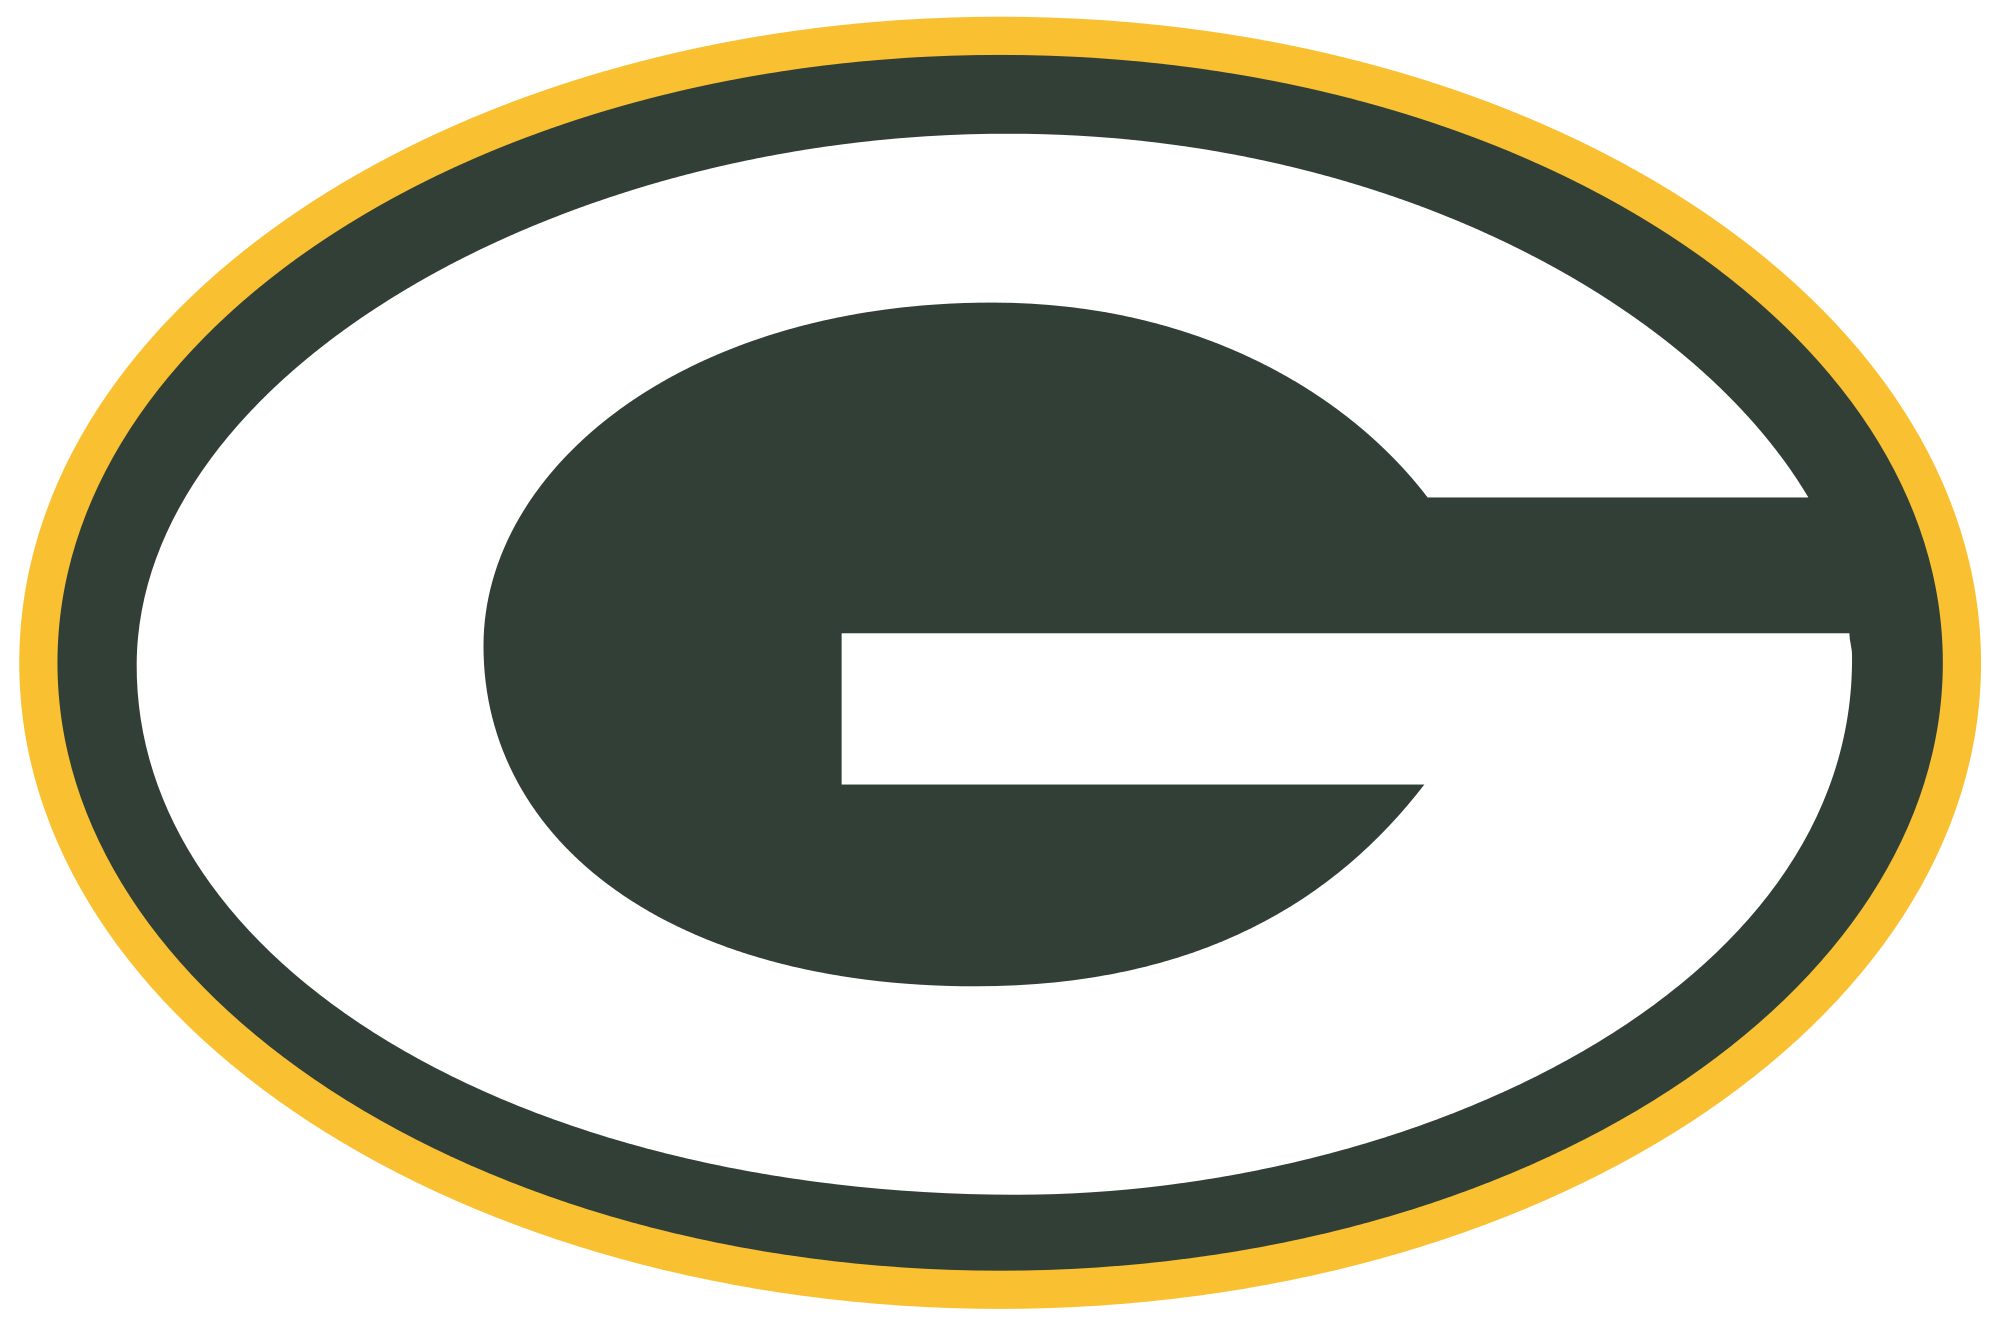 green bay packers wallpaper 2016 - photo #41